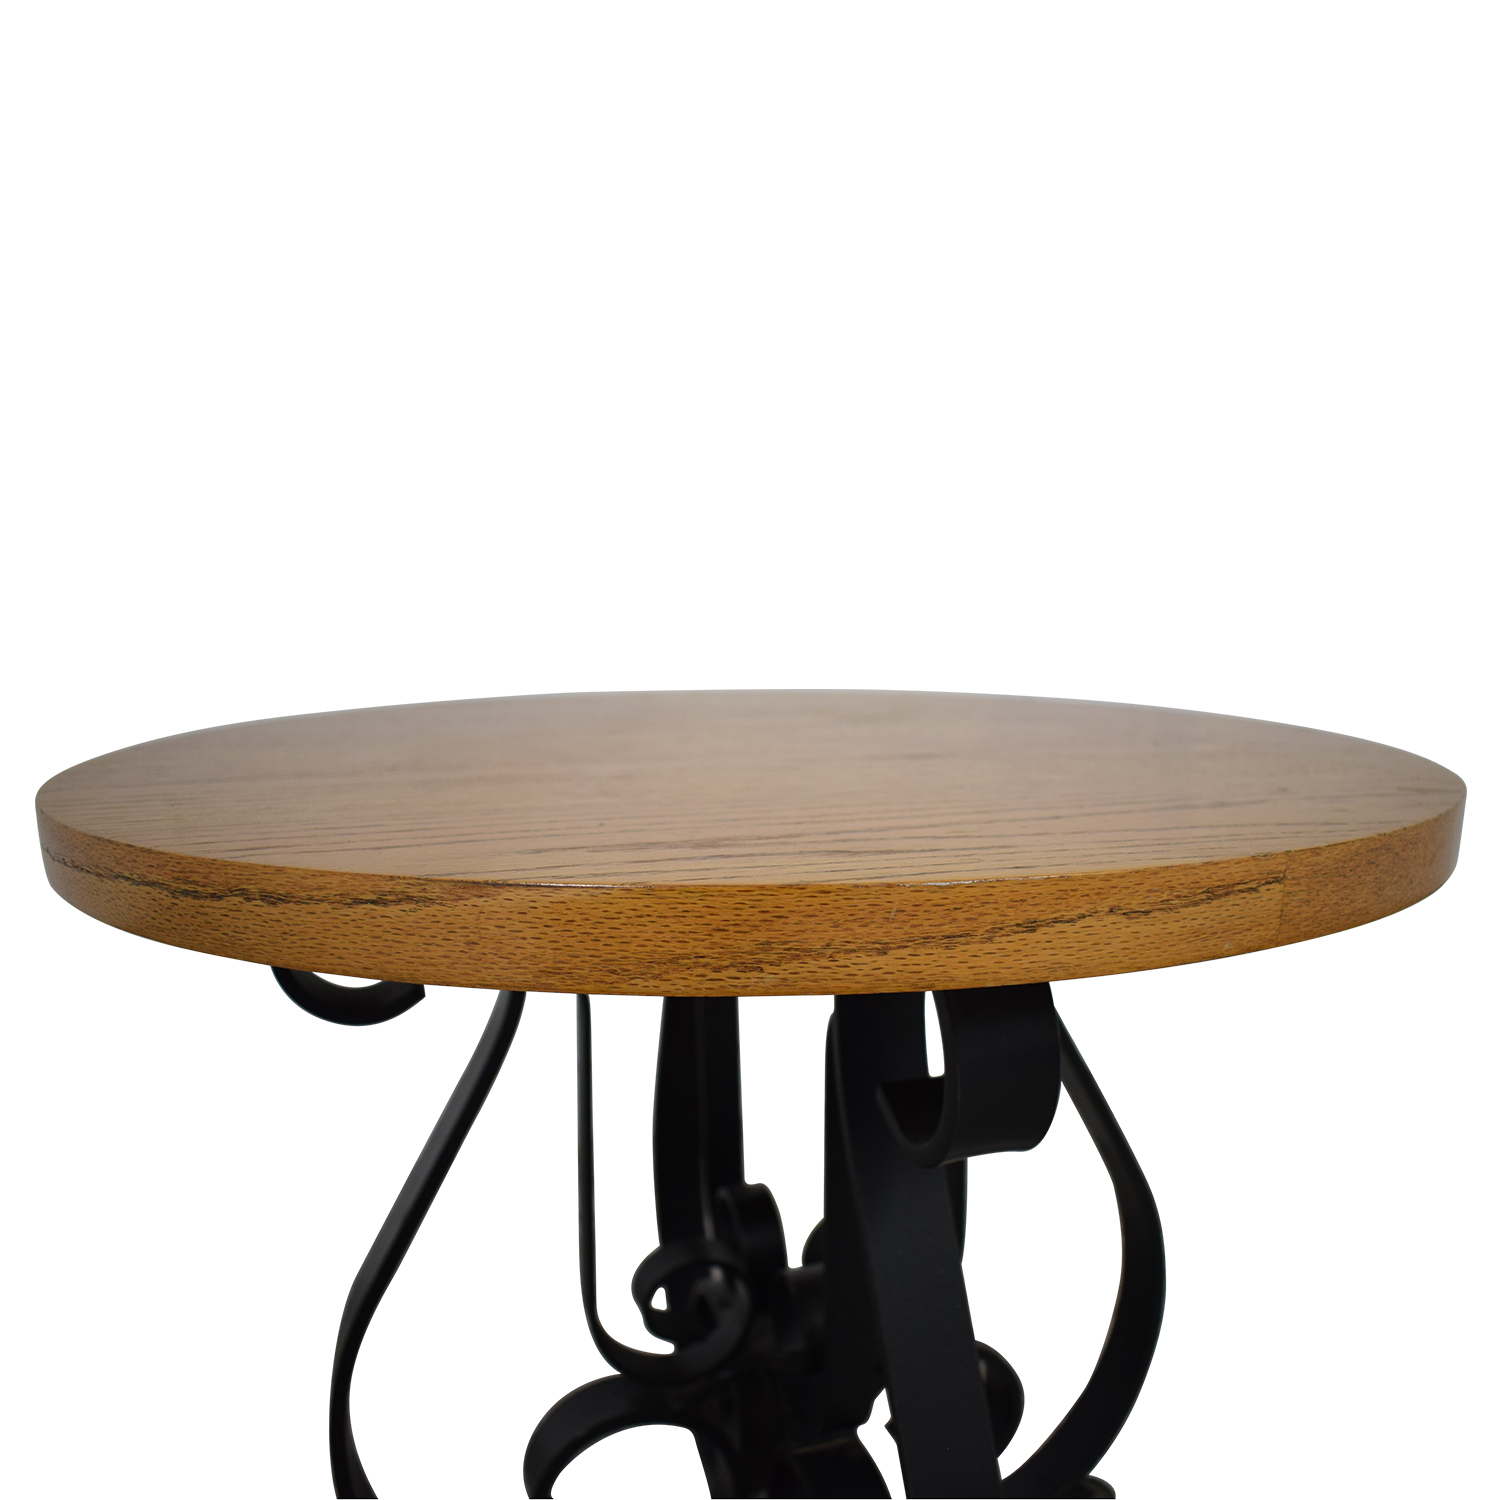 Round End Table drown & black